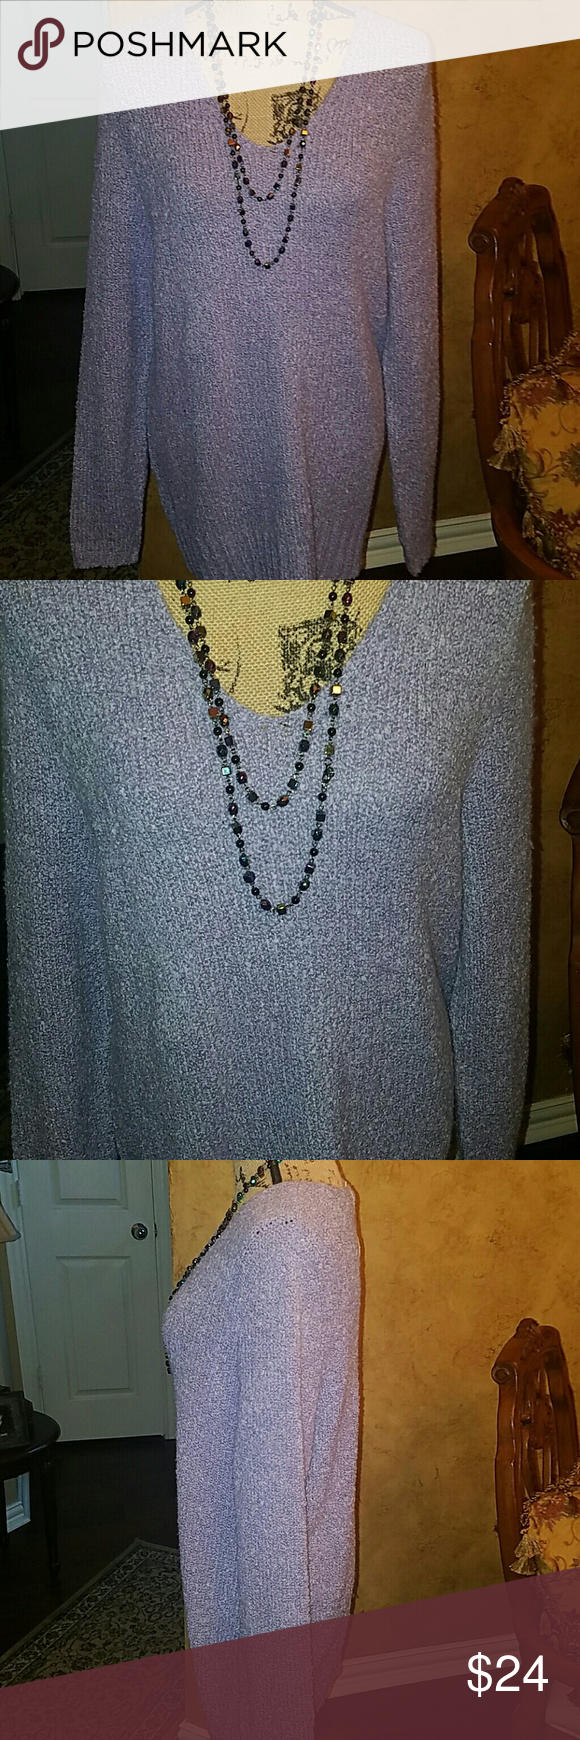 BEAUTIFUL LAVENDER COZY SEEATER This is a beautiful pullover v-neck sweater that is so cozy and is a beautiful grayish lavender. Brand new with tags, the material is 88% acrylic with 12% polyester. So warm and cozy. Great with a pair of jeans or a pair of trousers. croft & barrow Sweaters V-Necks